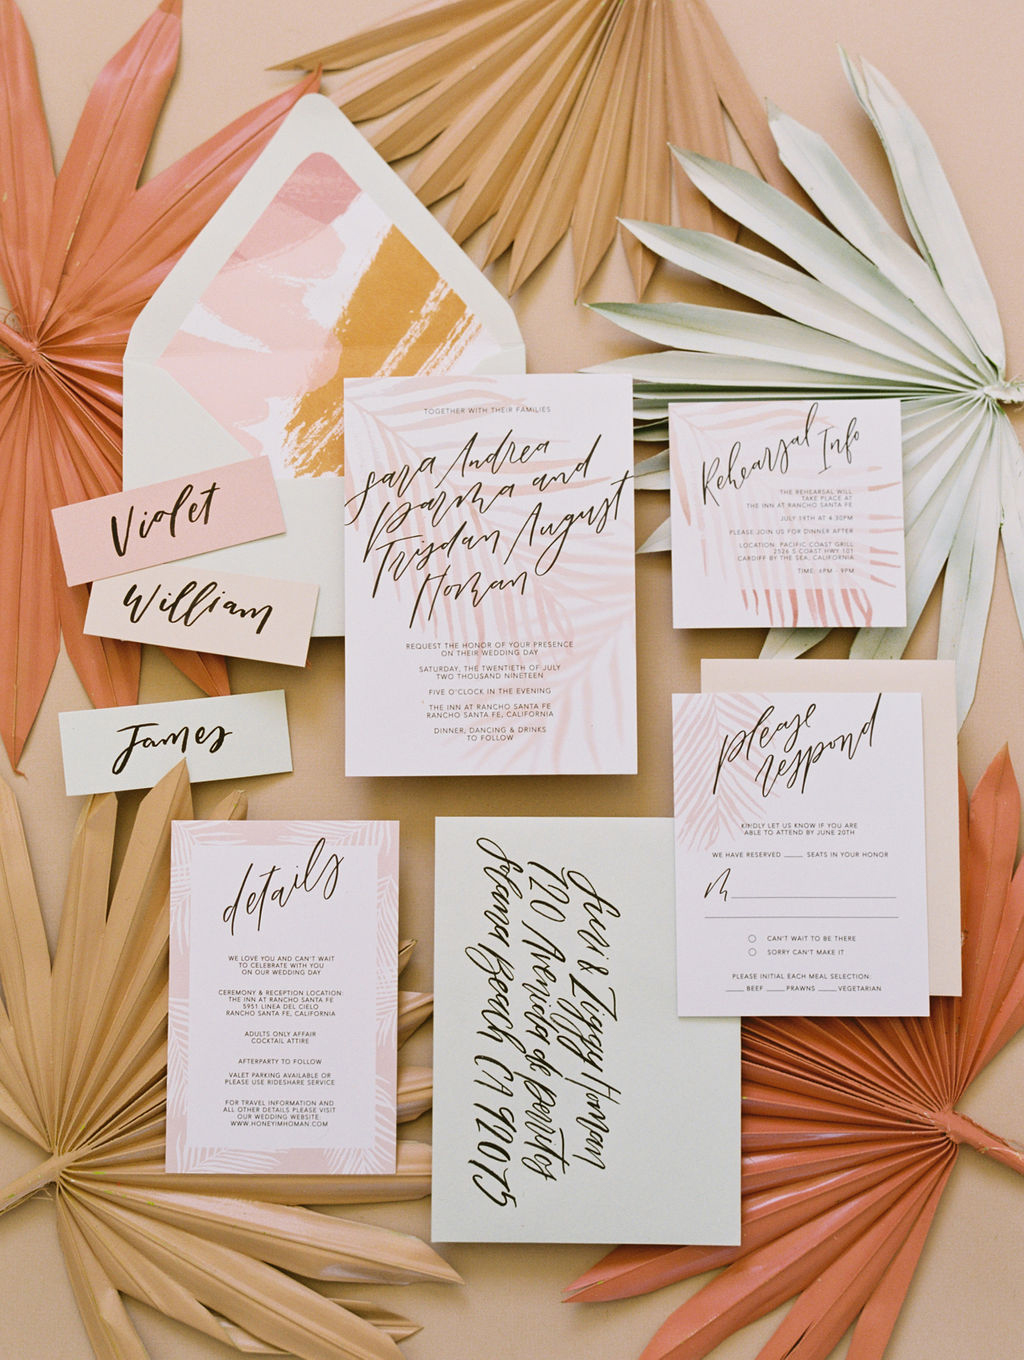 sara trisdan wedding invitations in orange and yellow tones